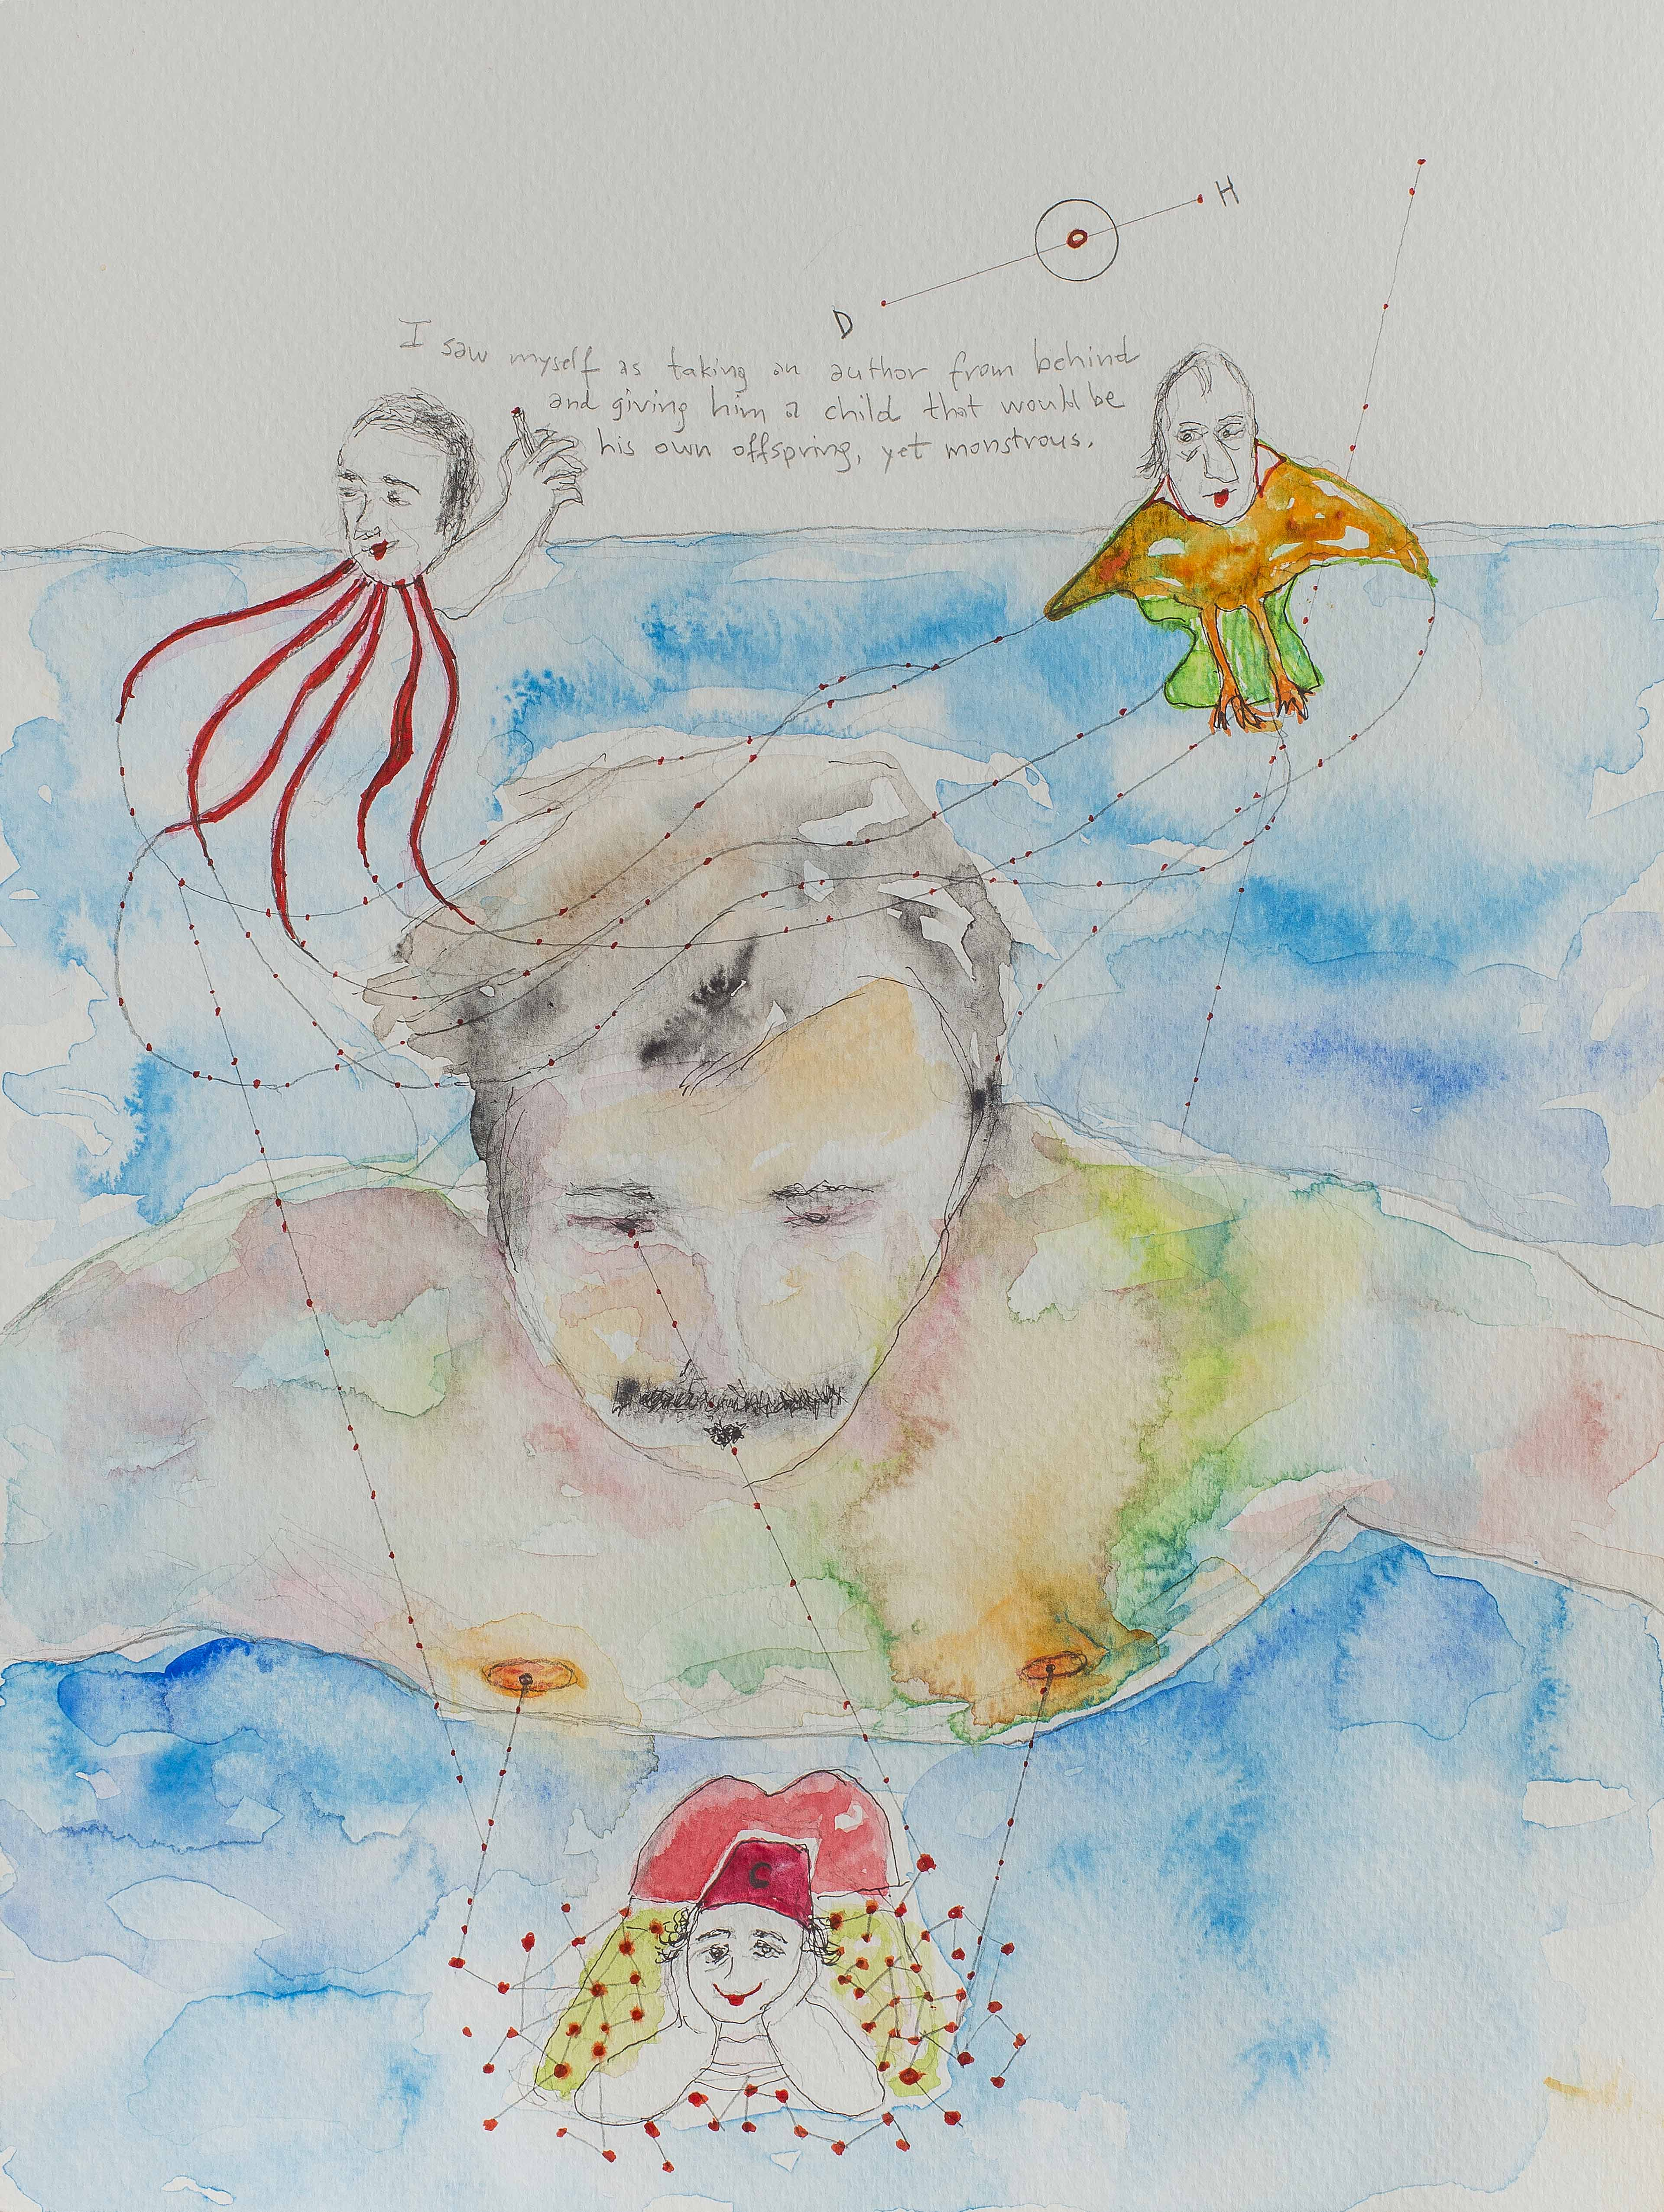 12. Self-portrait of the Artist as Taken from Behind by Philosophers, watercolour, pencil, 23.30 cm,